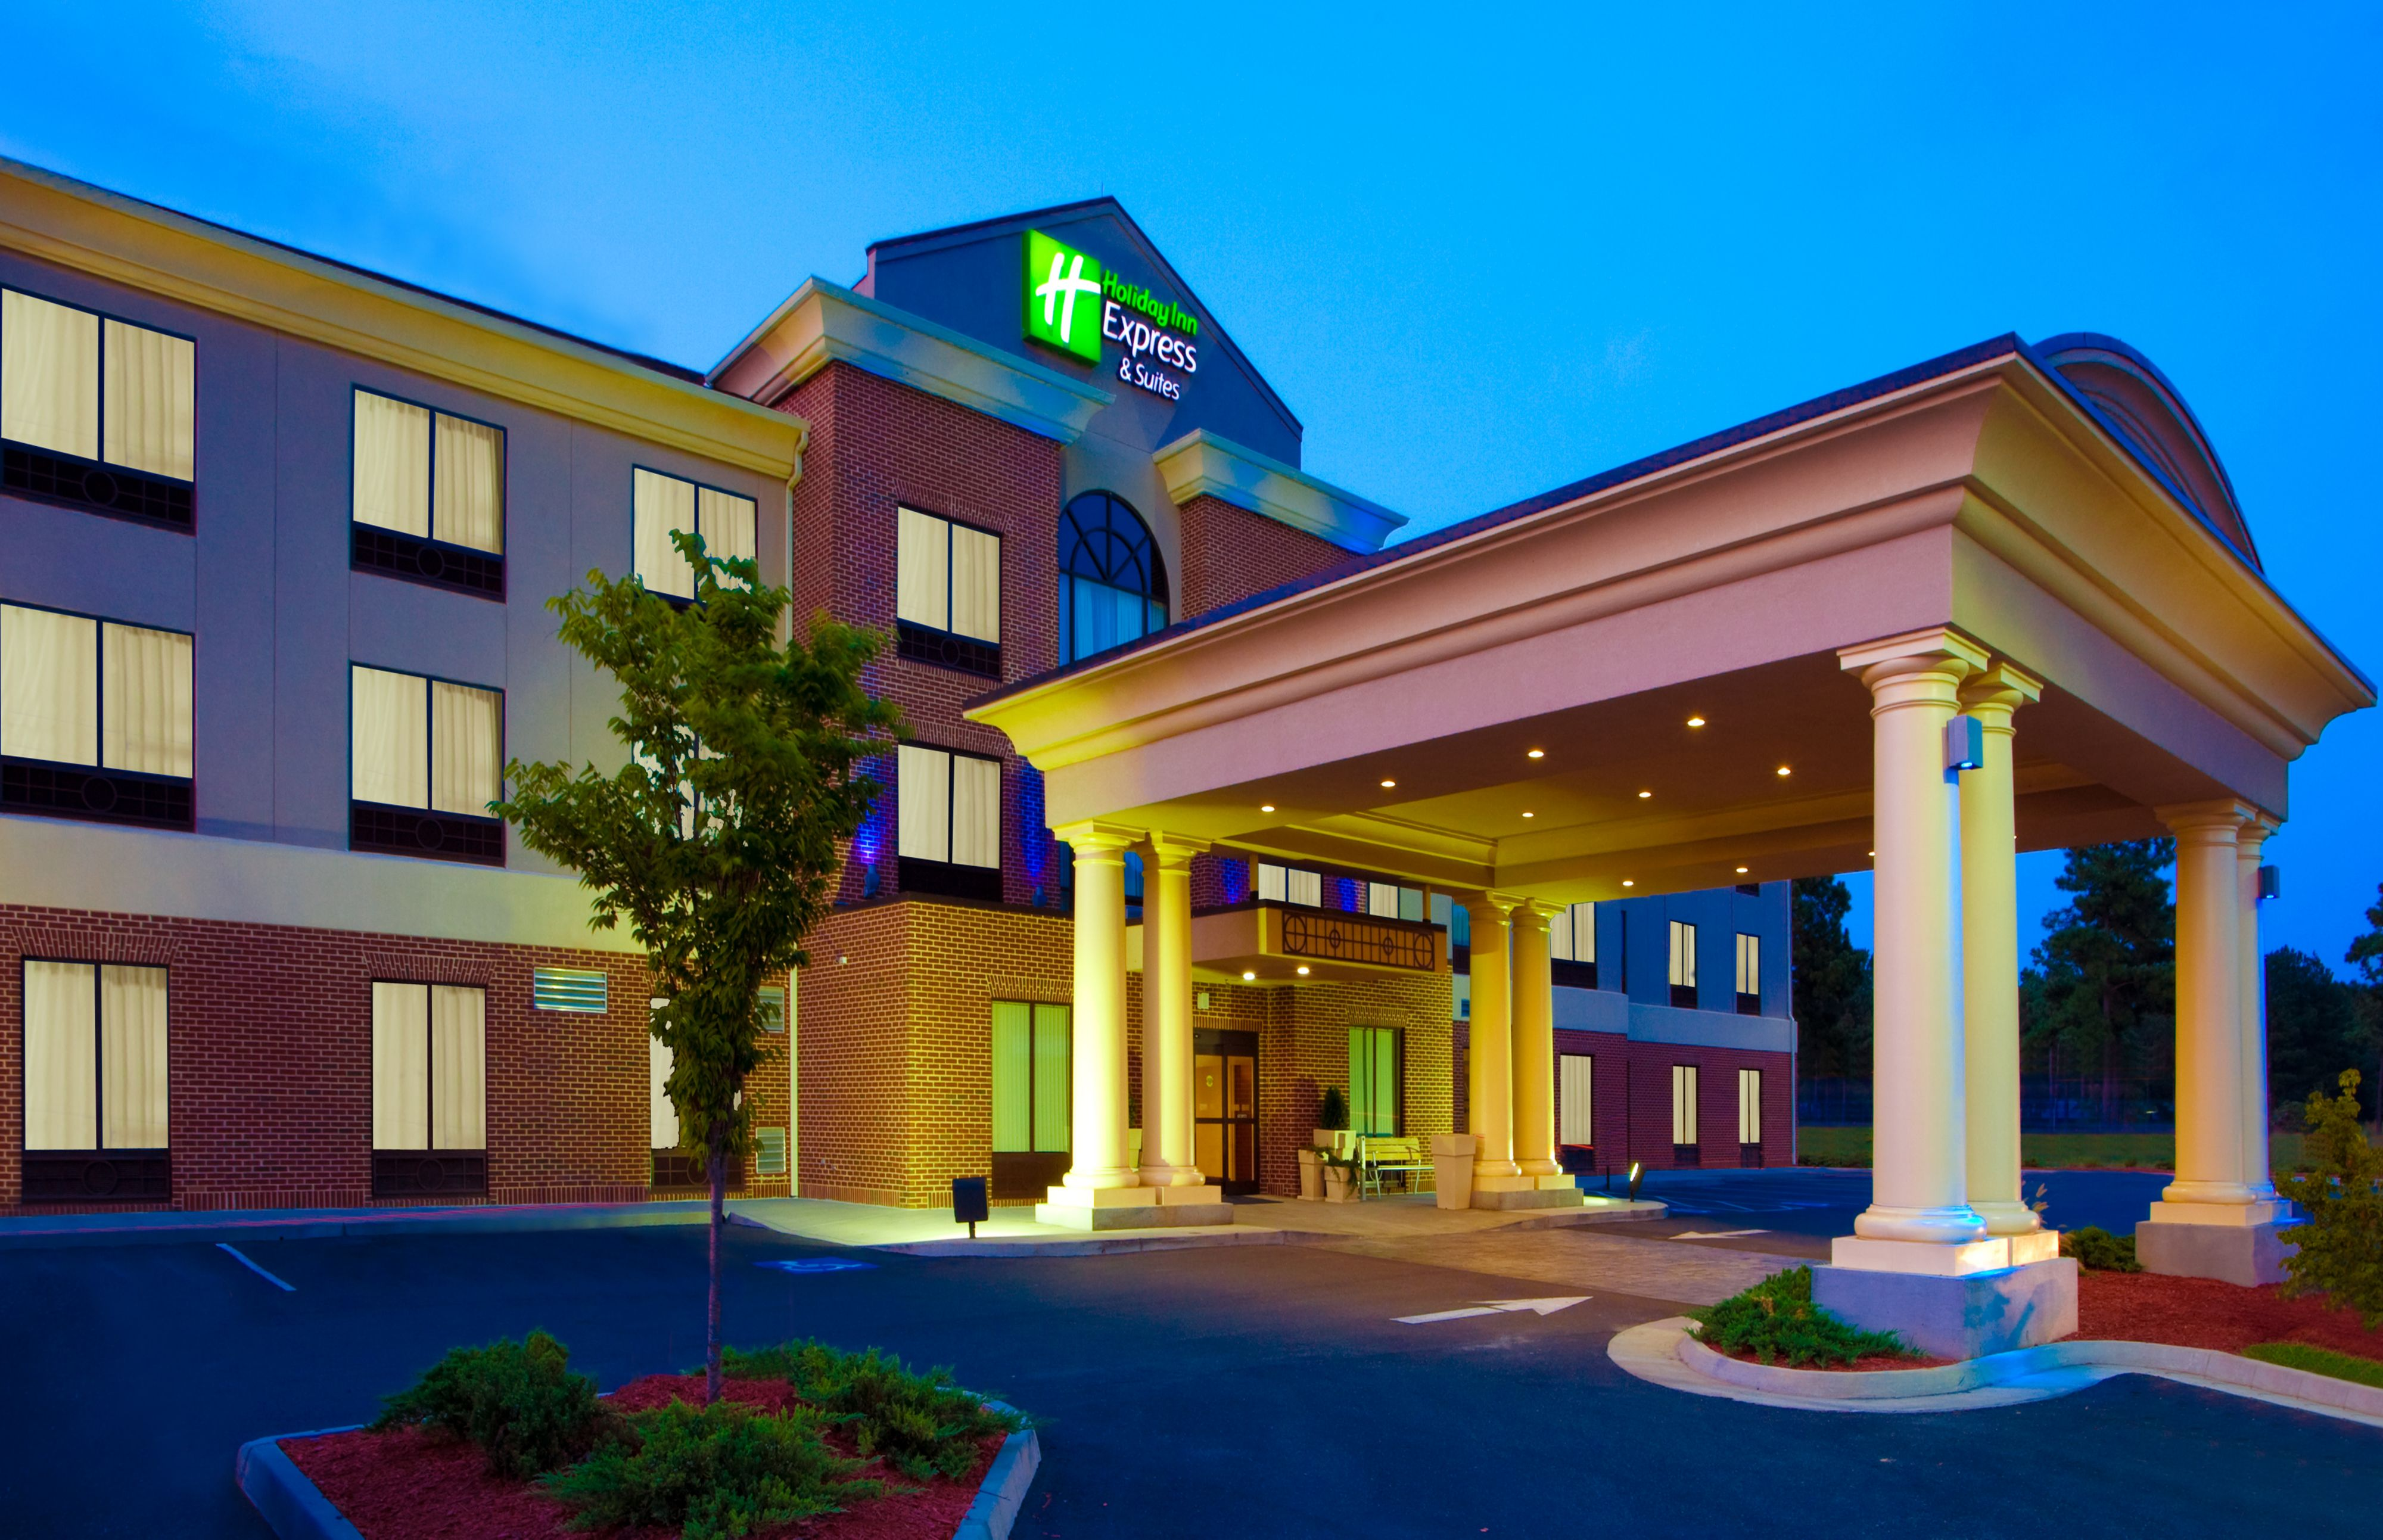 Holiday Inn Express Suites Tampa I 75 Bruce B Downs Tampa Fl